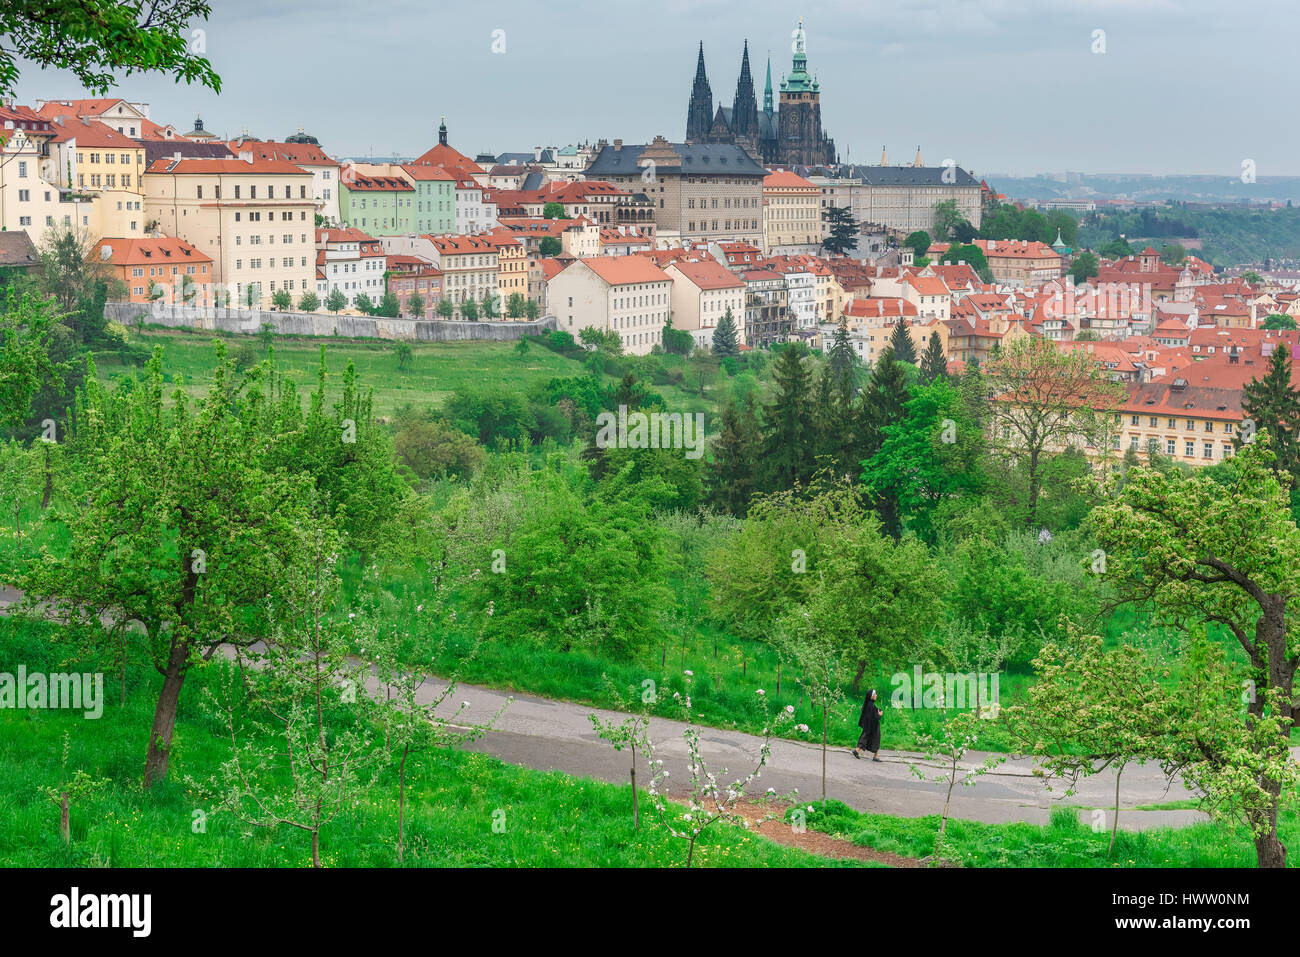 Petrin Hill Prague, on a late spring evening a nun takes a walk across Petrin Hill, a densely wooded park on the - Stock Image